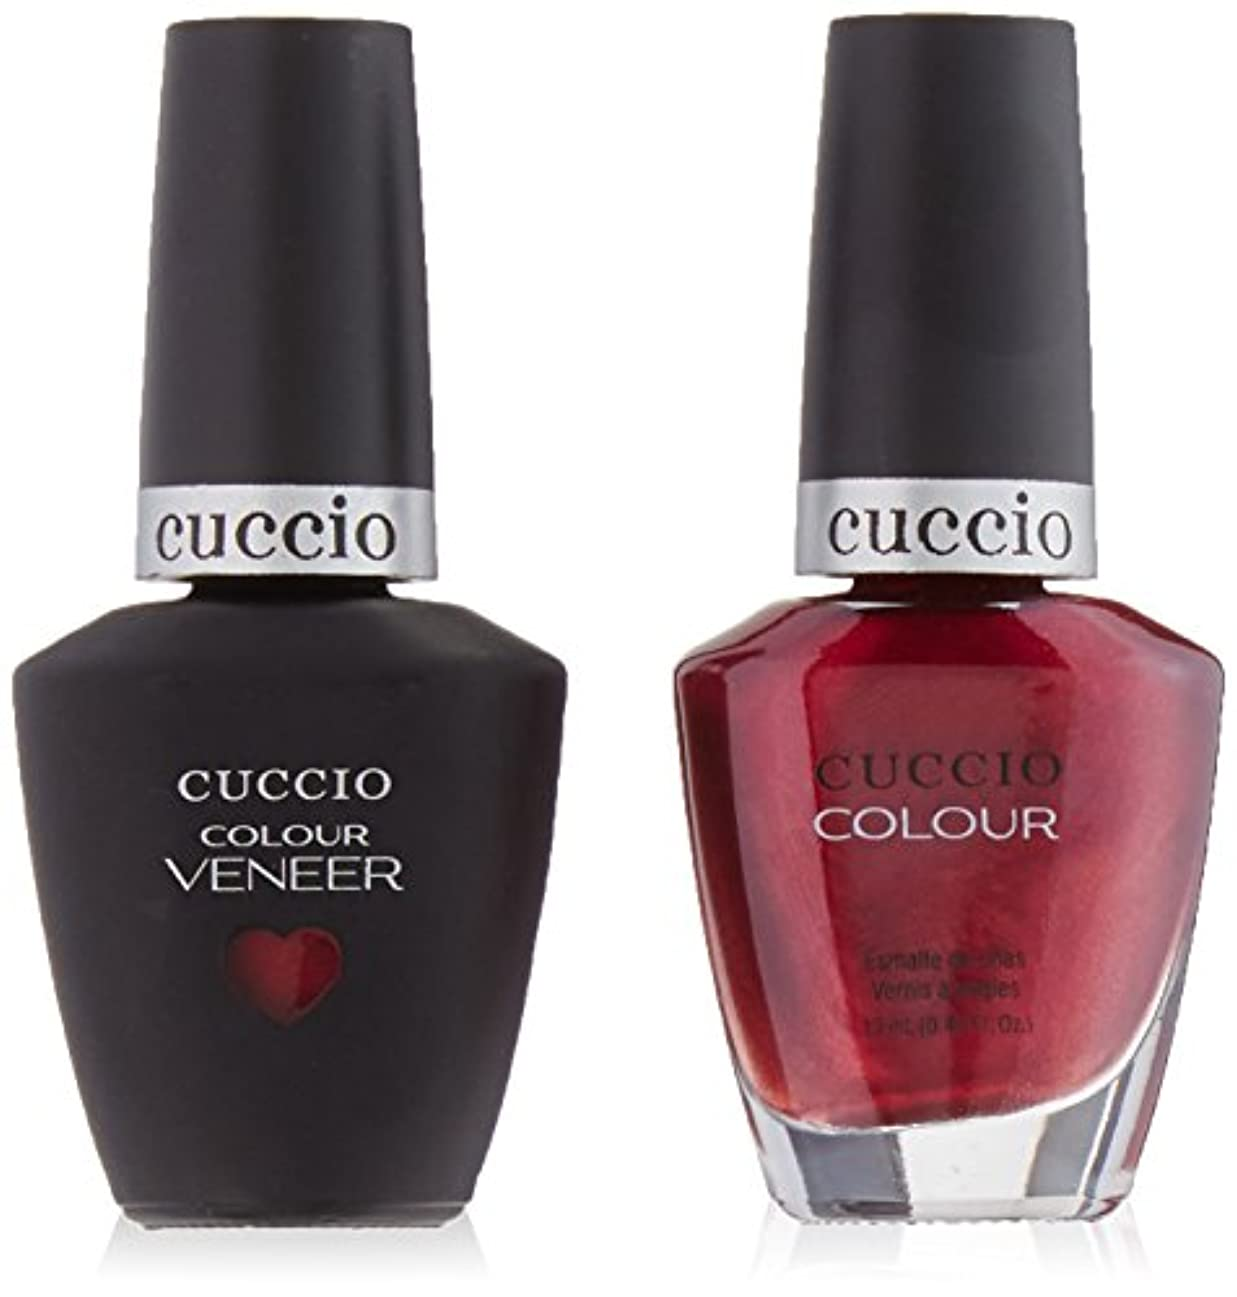 パッチスパーク口述するCuccio MatchMakers Veneer & Lacquer - Moscow Red Square - 0.43oz / 13ml Each